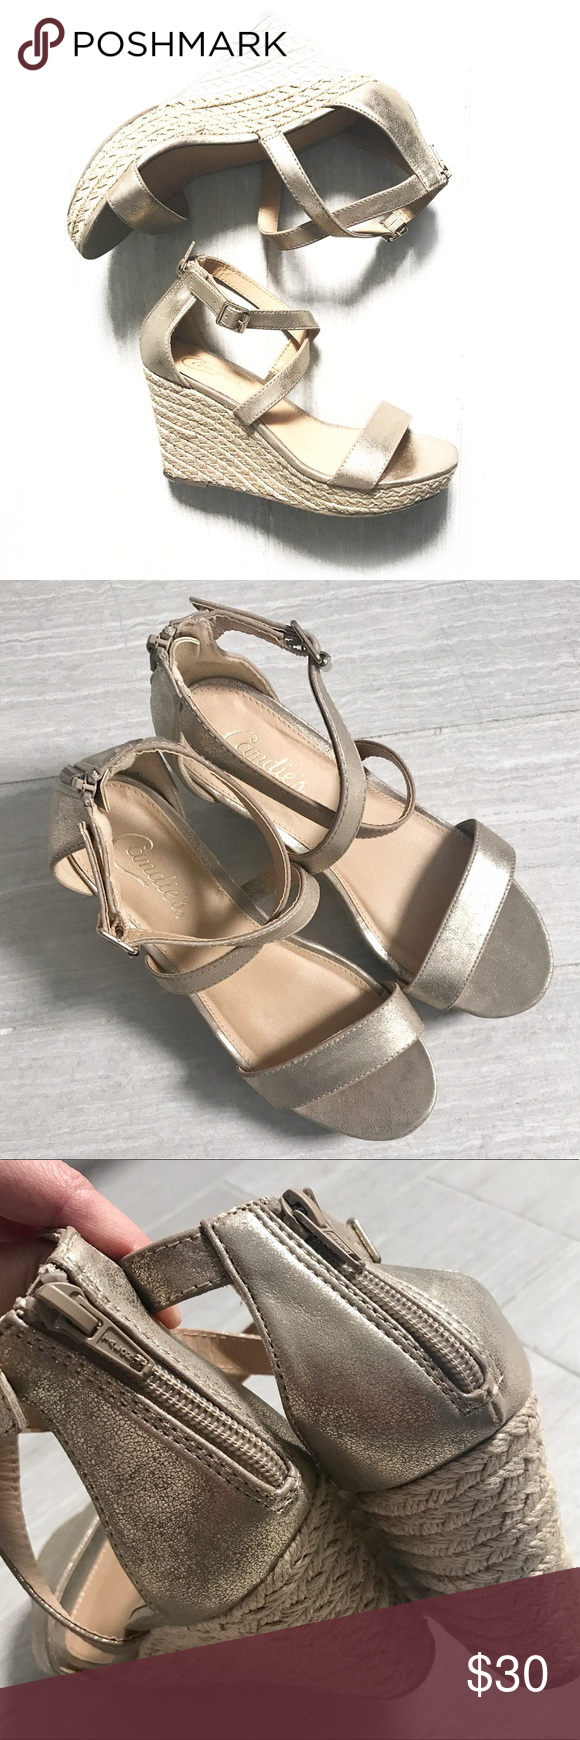 Candies Champagne Wedges Open Toe Strappy open toe wedges sandals, champagne gold color with beige heel. Zipper on back, buckle. Never worn! Candies size 7.5 medium. Candie's Shoes Wedges